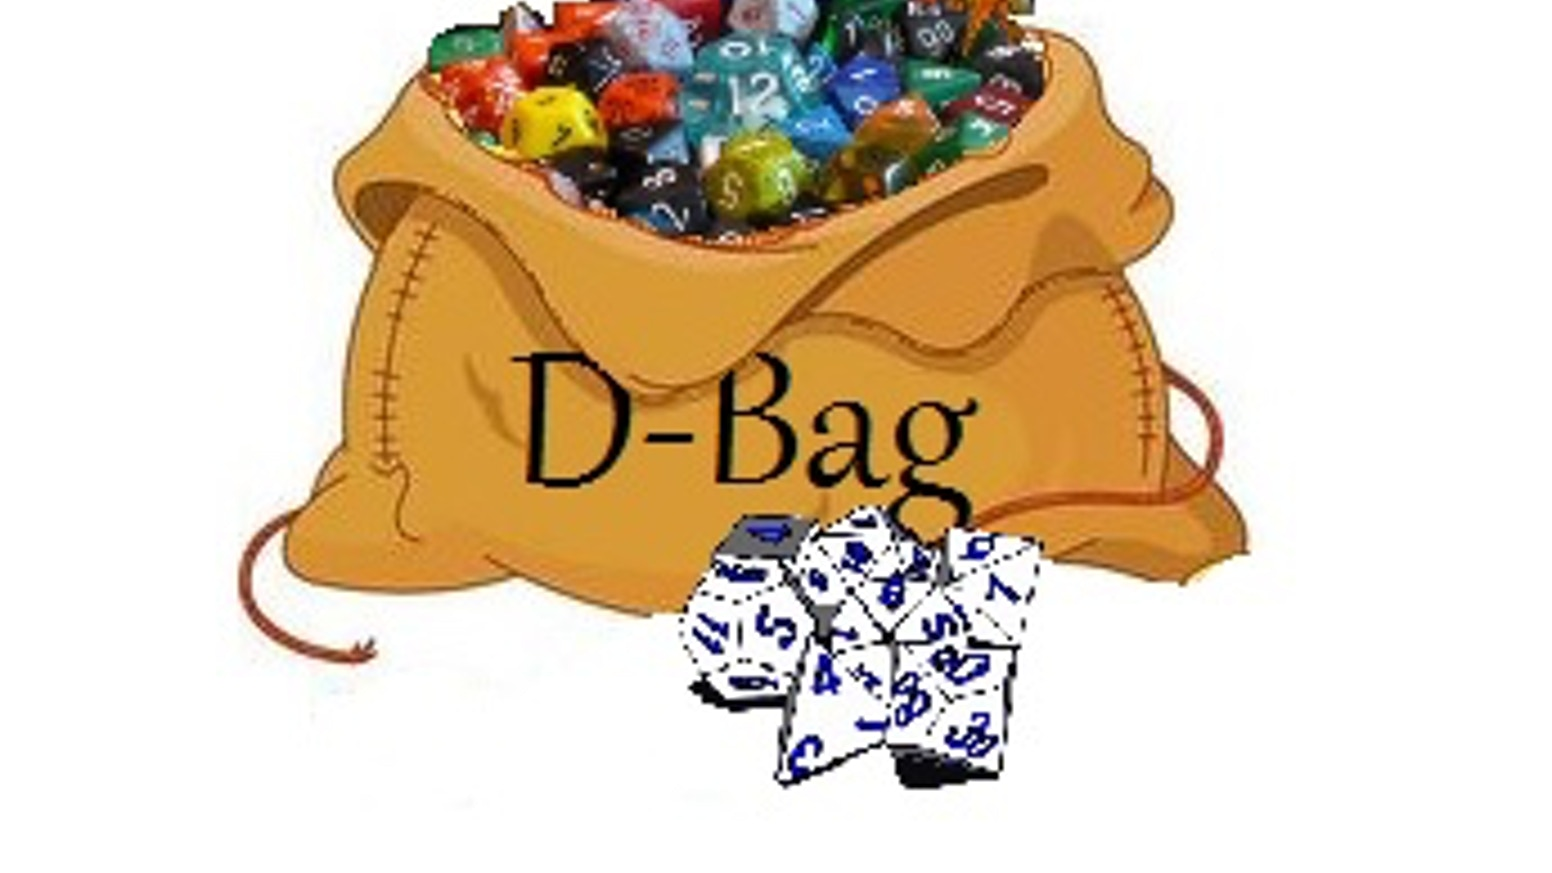 A new kind of dice bag, with 6 individual compartments for d-4's, d-6's, d-8's, d-10's, d-12's, and d-20's... it's the d-bag!